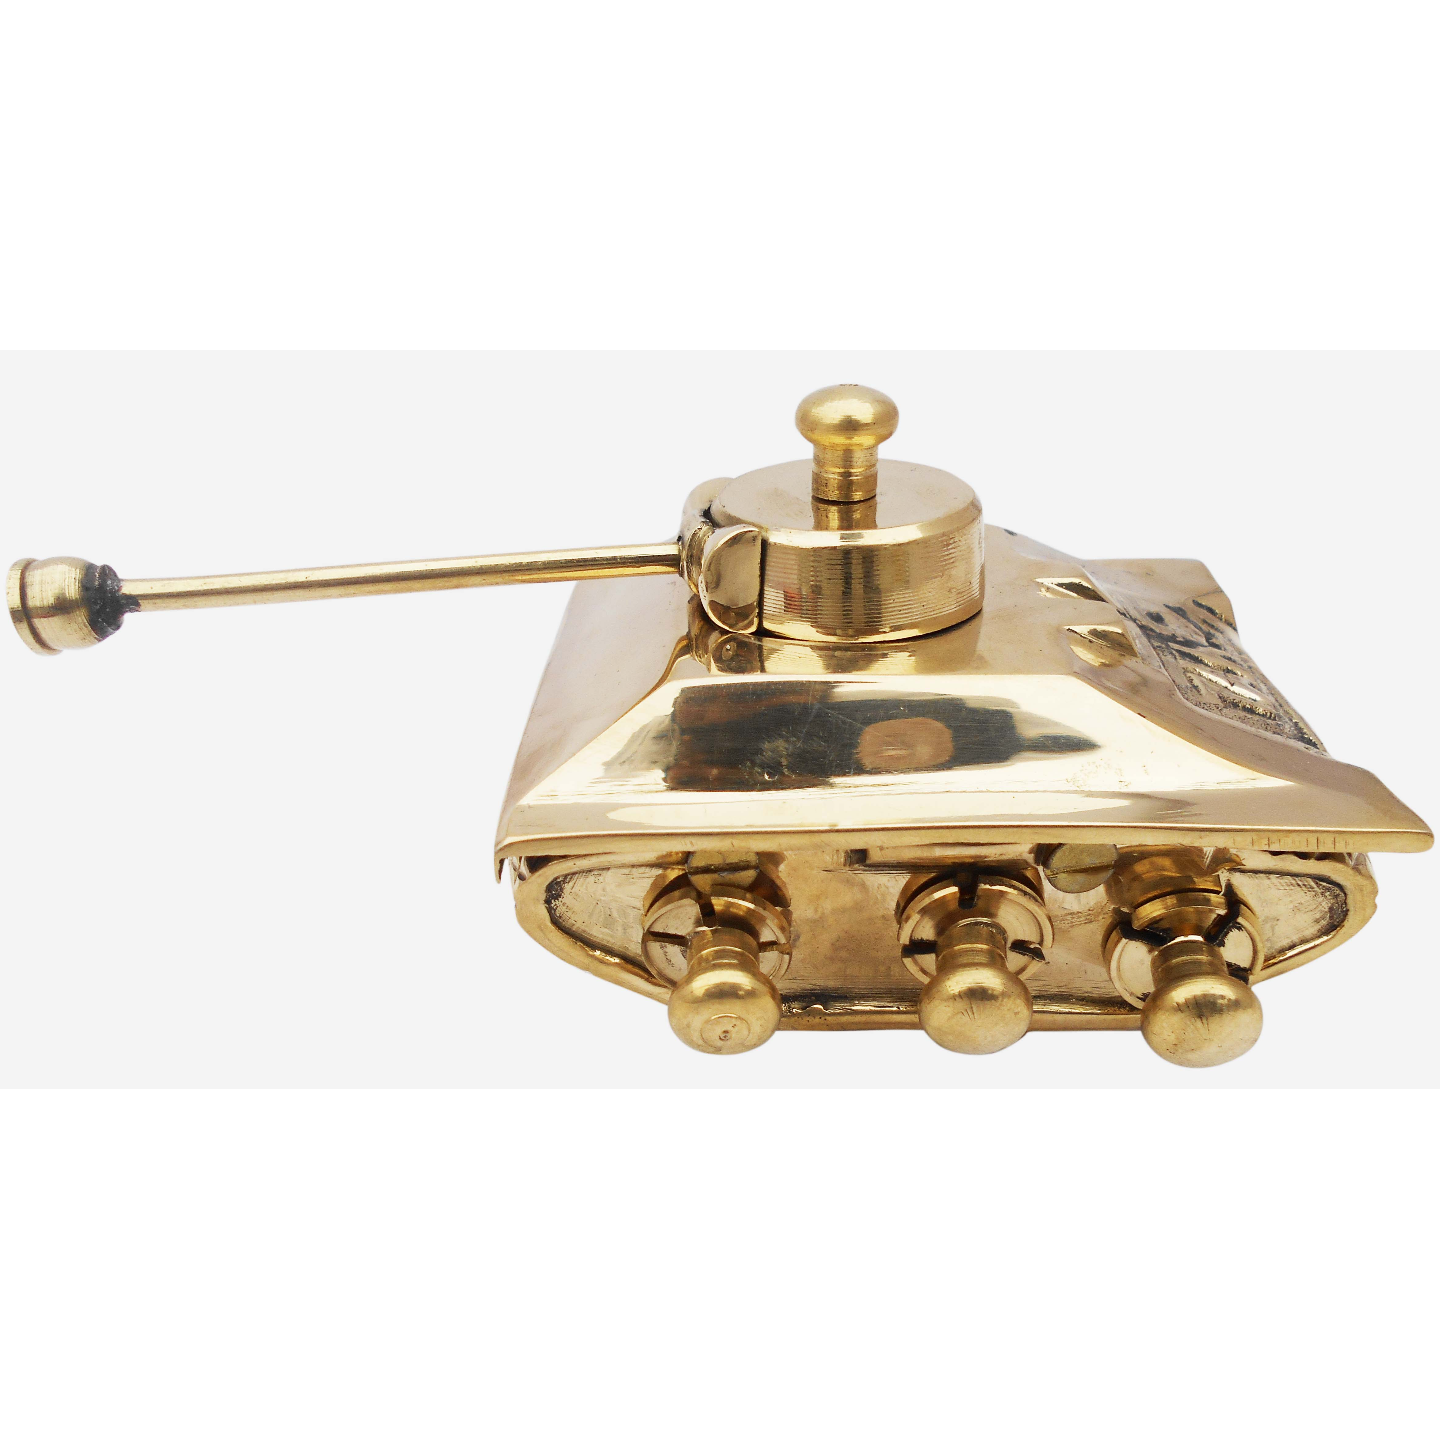 Brass Tank Toy Miniature For Children Playing- 5.5*4*3 Inch  (Z329 B)